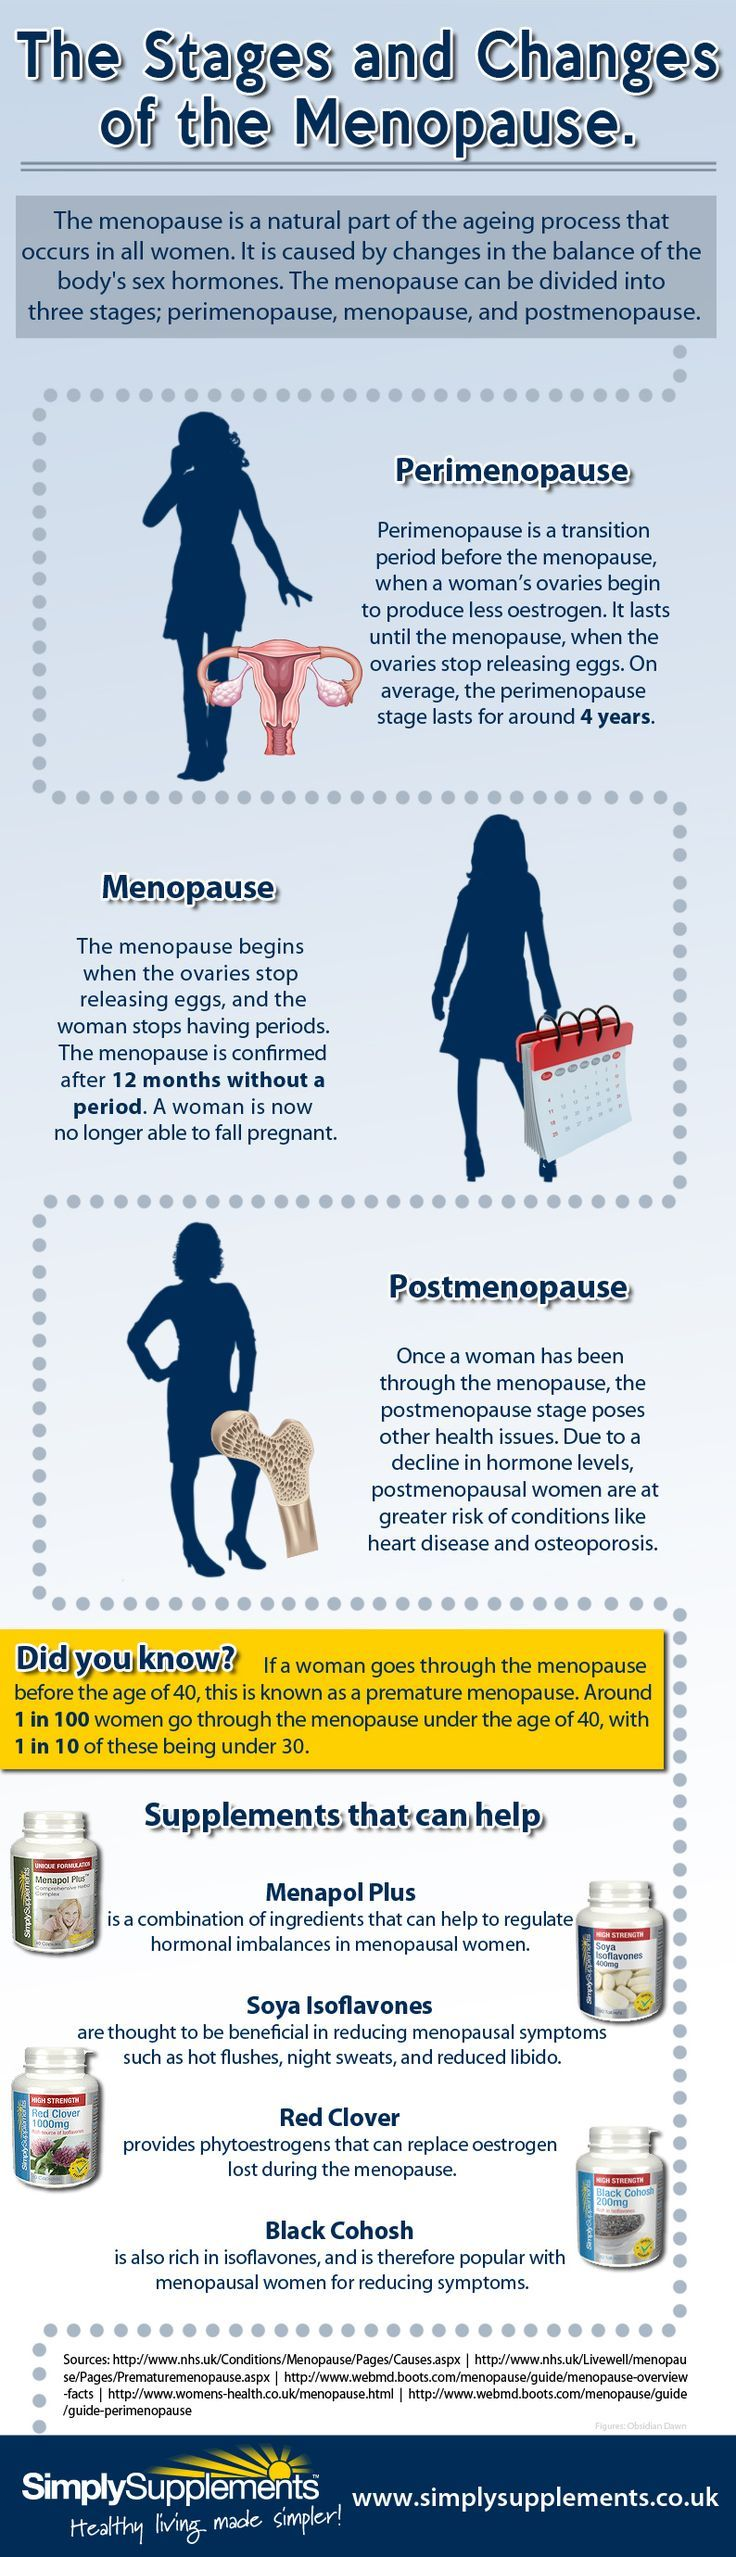 Will YOUR marriage survive the menopause